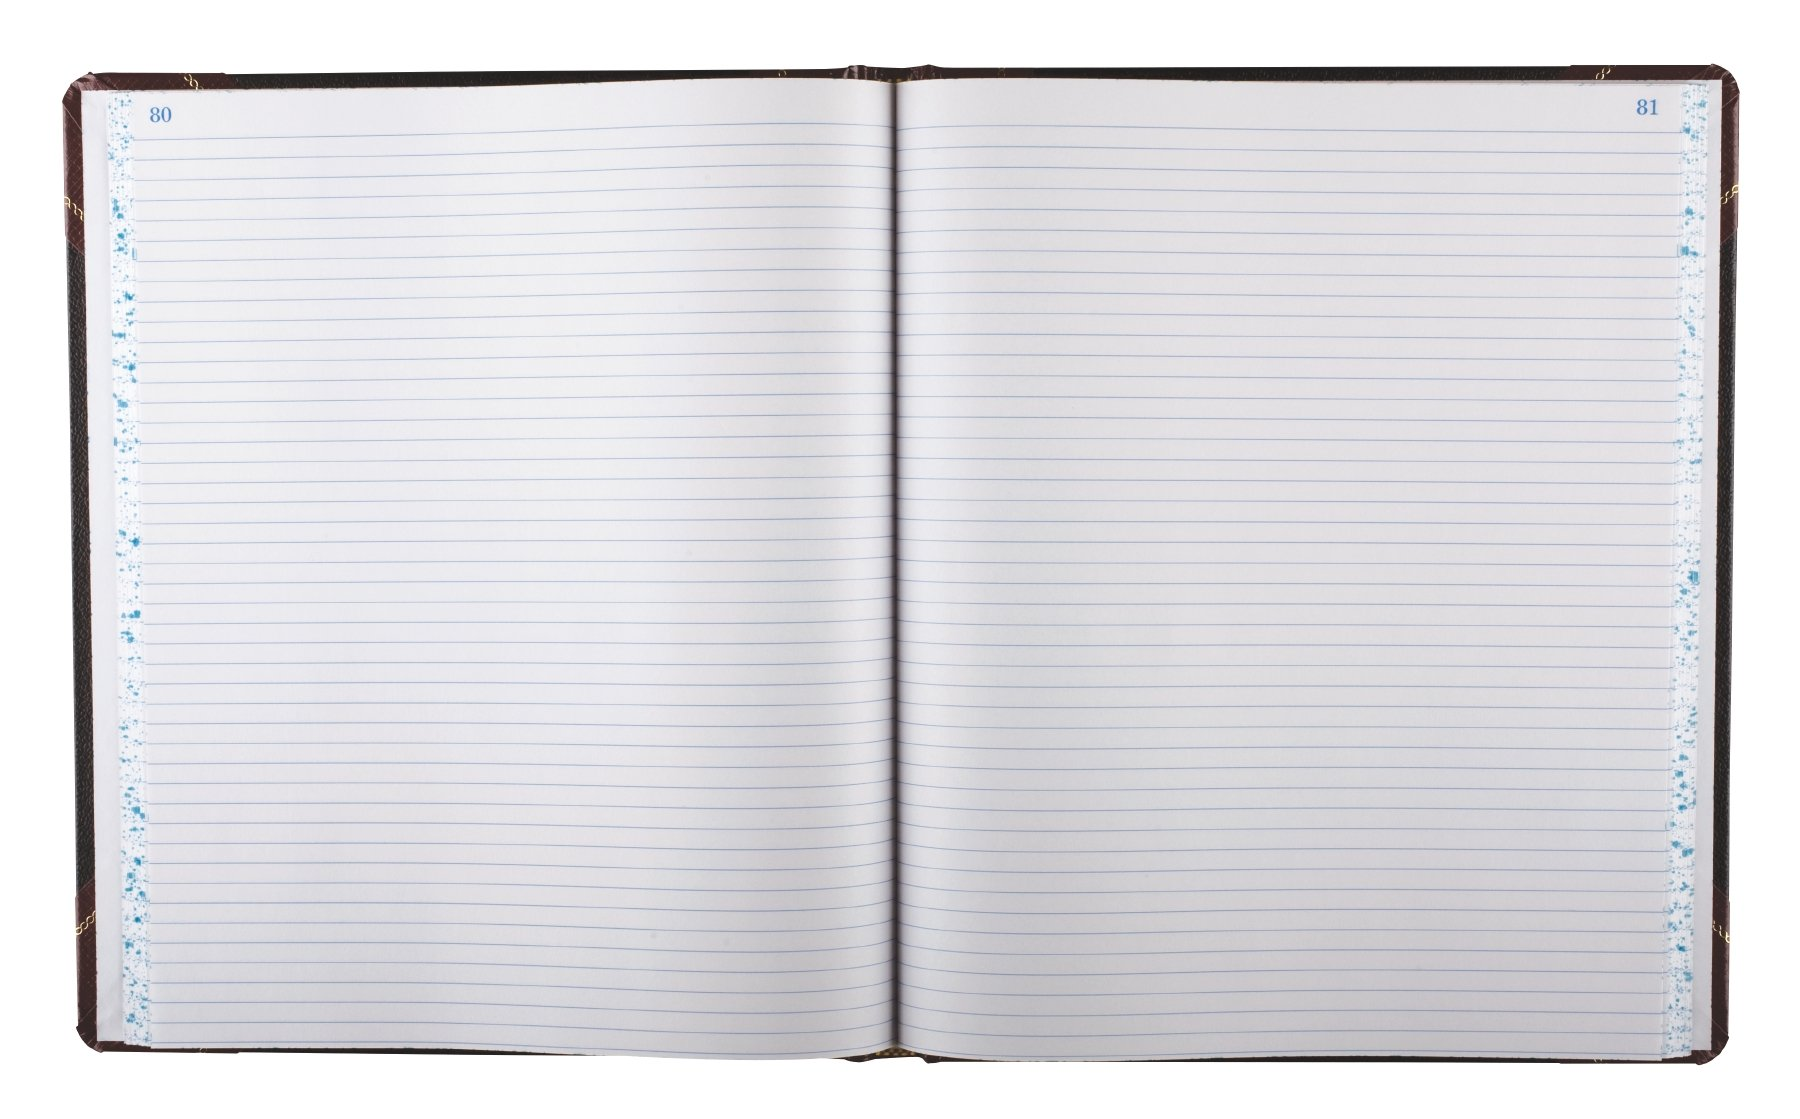 Boorum & Pease 16021215F Record Ruled Book, Black Cover, 150 Pages, 10 1/8 x 12 1/4